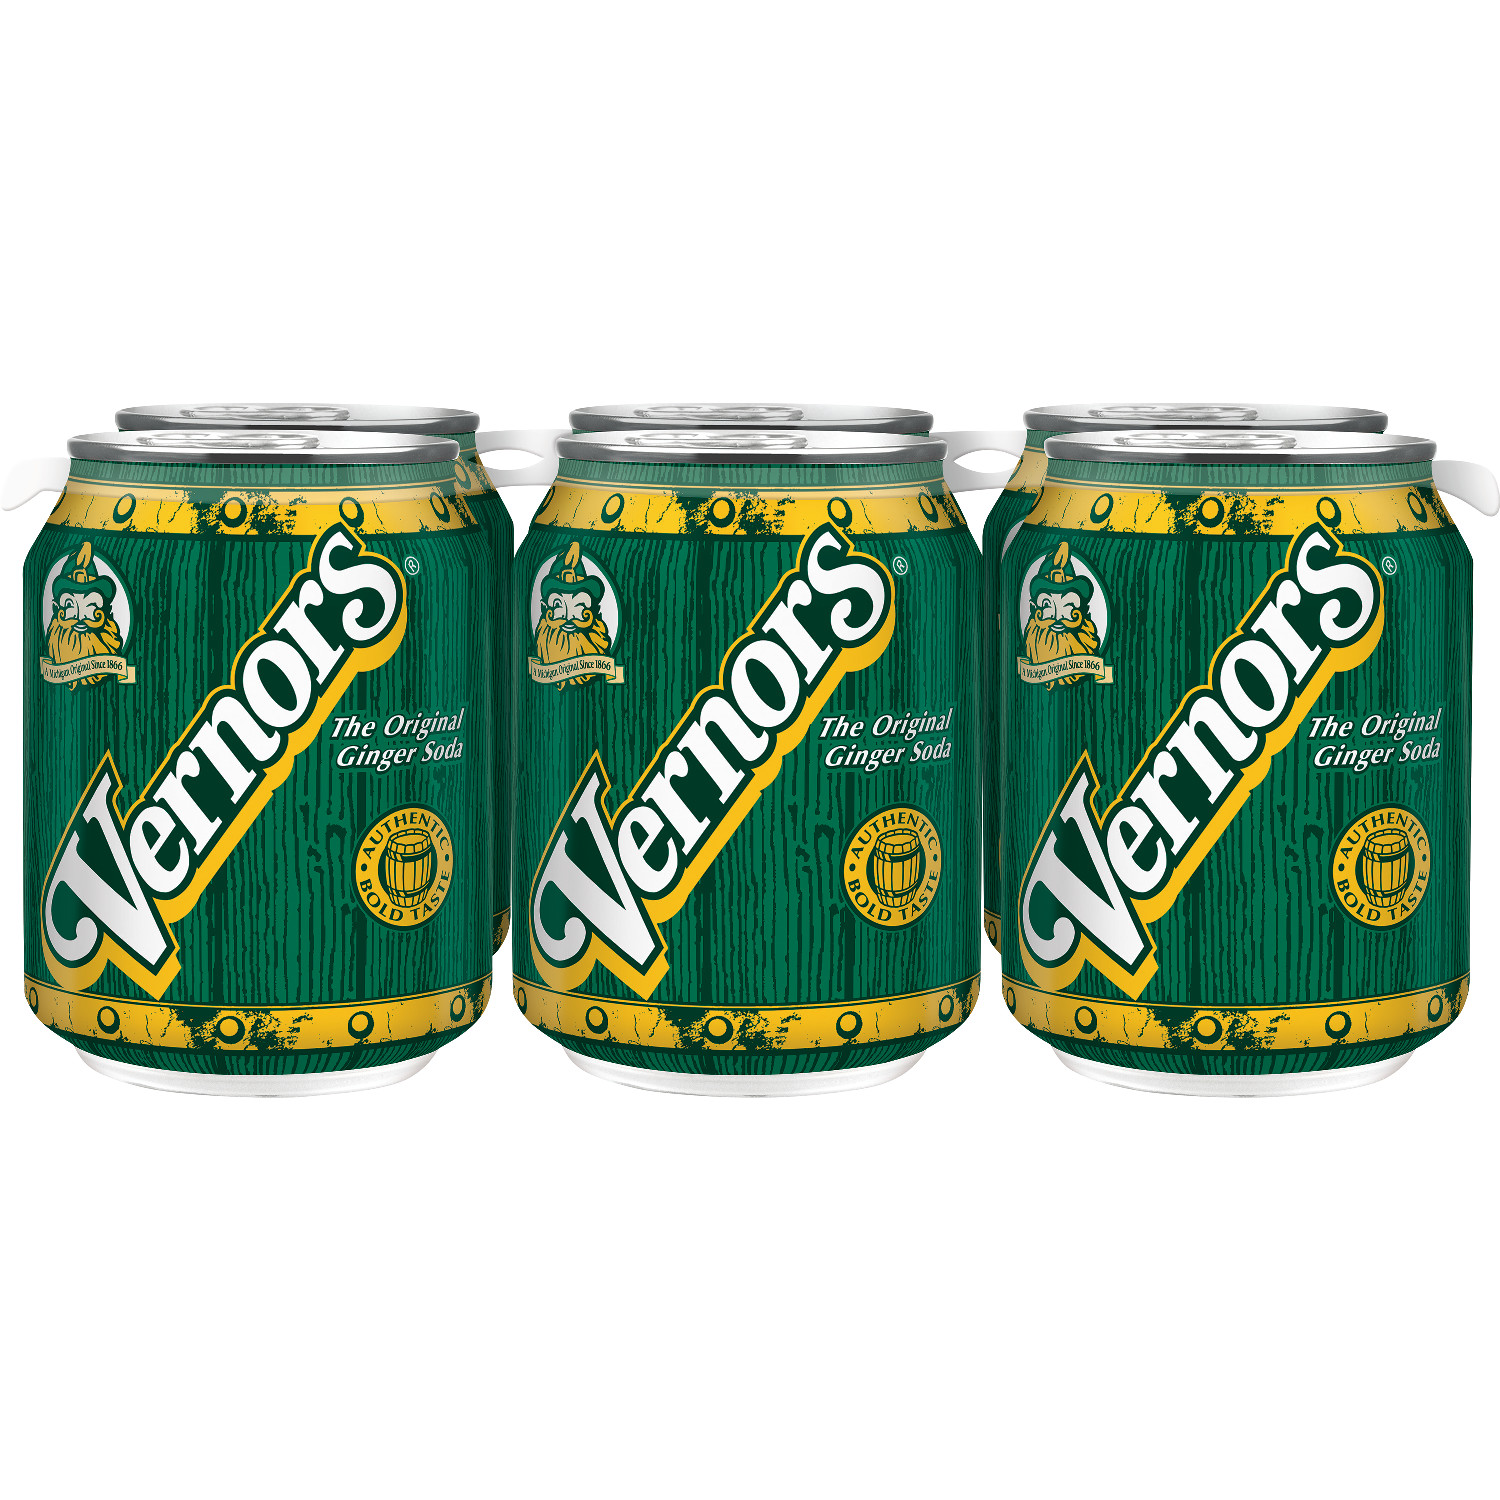 Vernors Ginger Soda, 8 fl oz, 6 pack